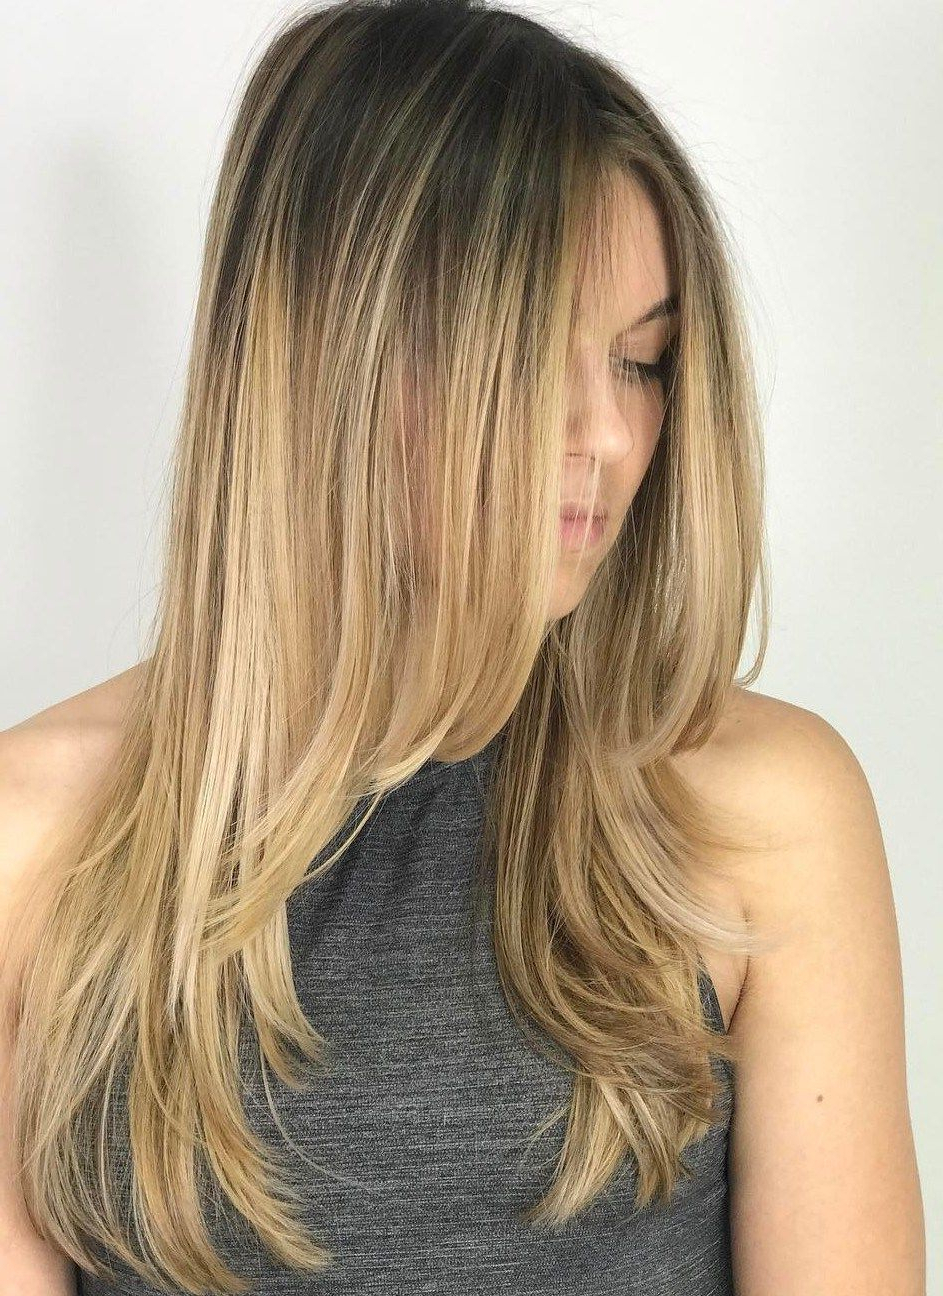 80 Cute Layered Hairstyles And Cuts For Long Hair In 2018 | Hair with regard to Short Curly Hairstyles With Long Face-Framing Pieces